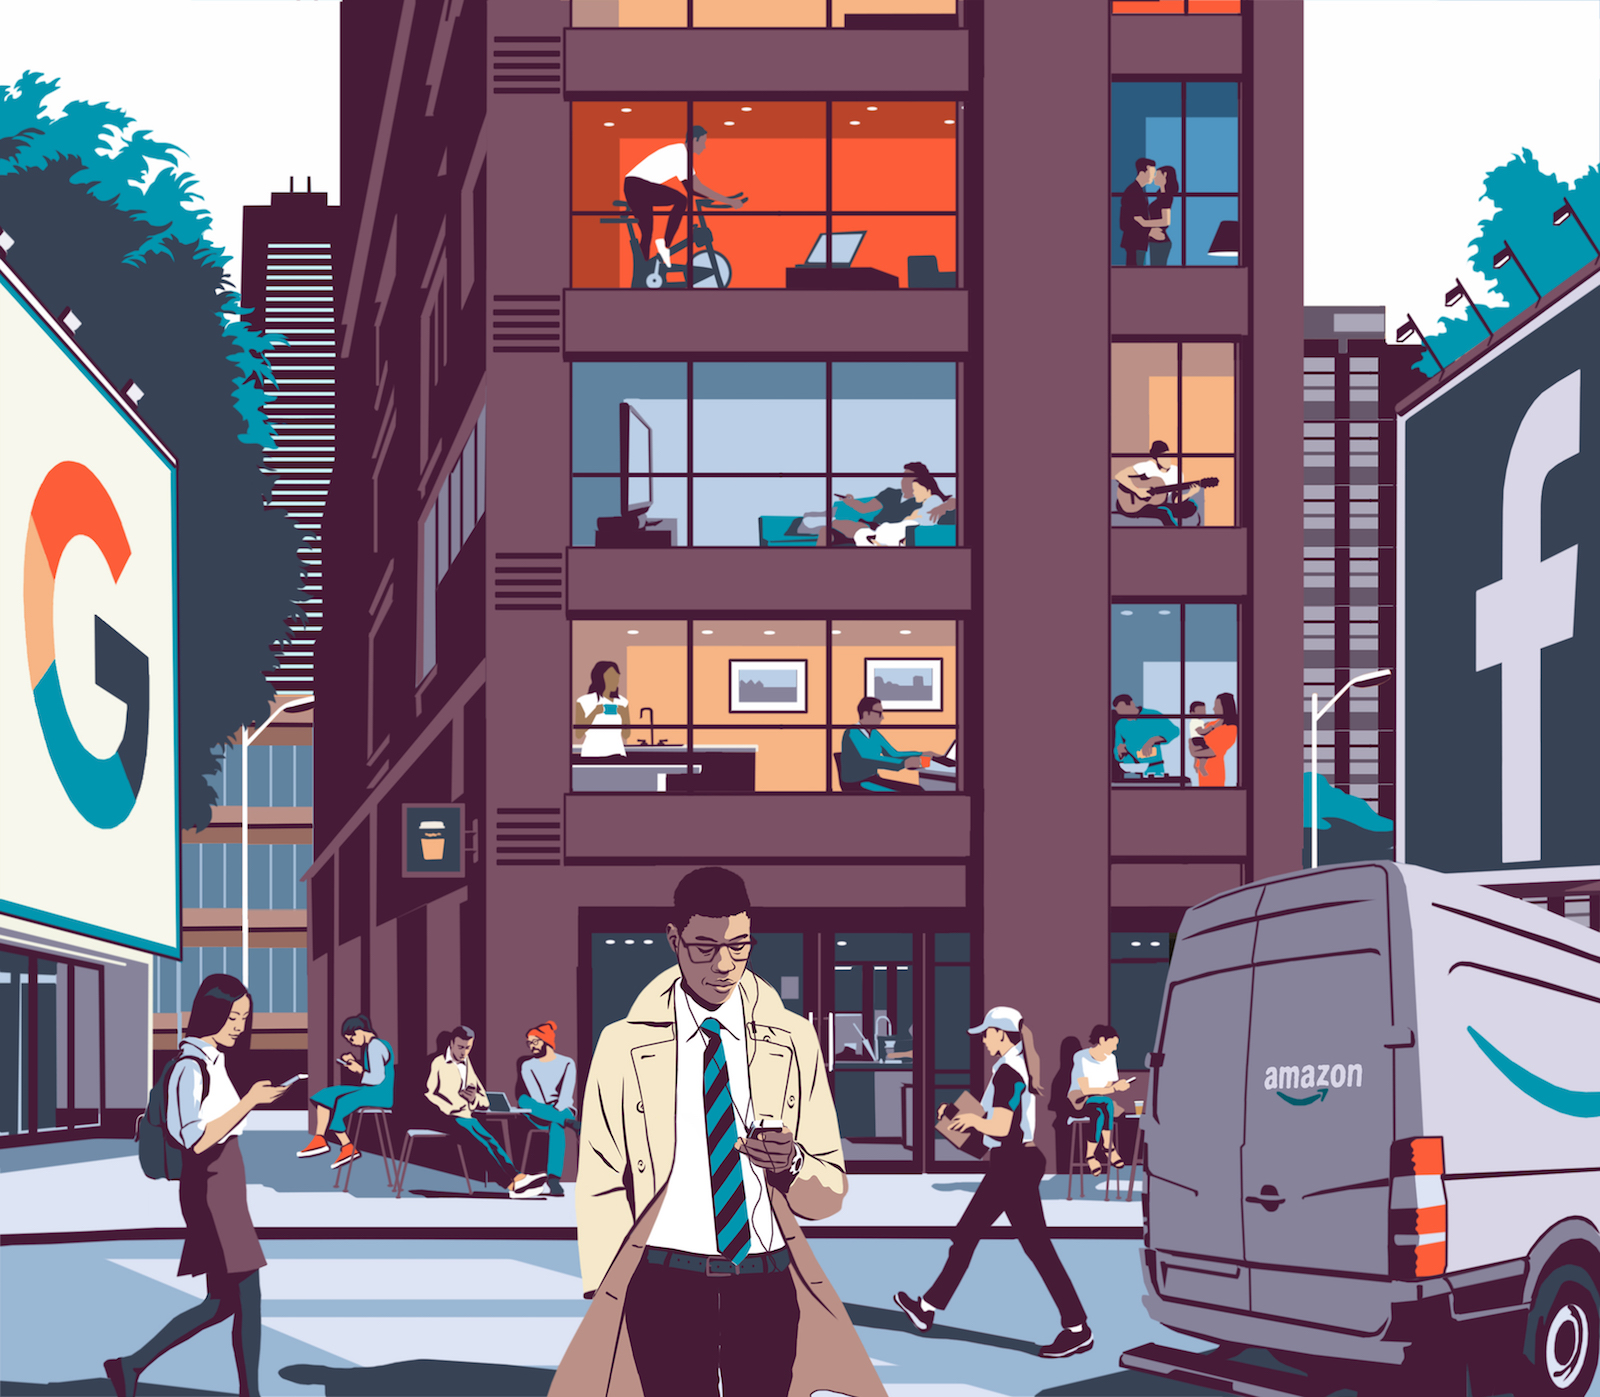 Bill Butcher / The Future of Privacy / Financial Times